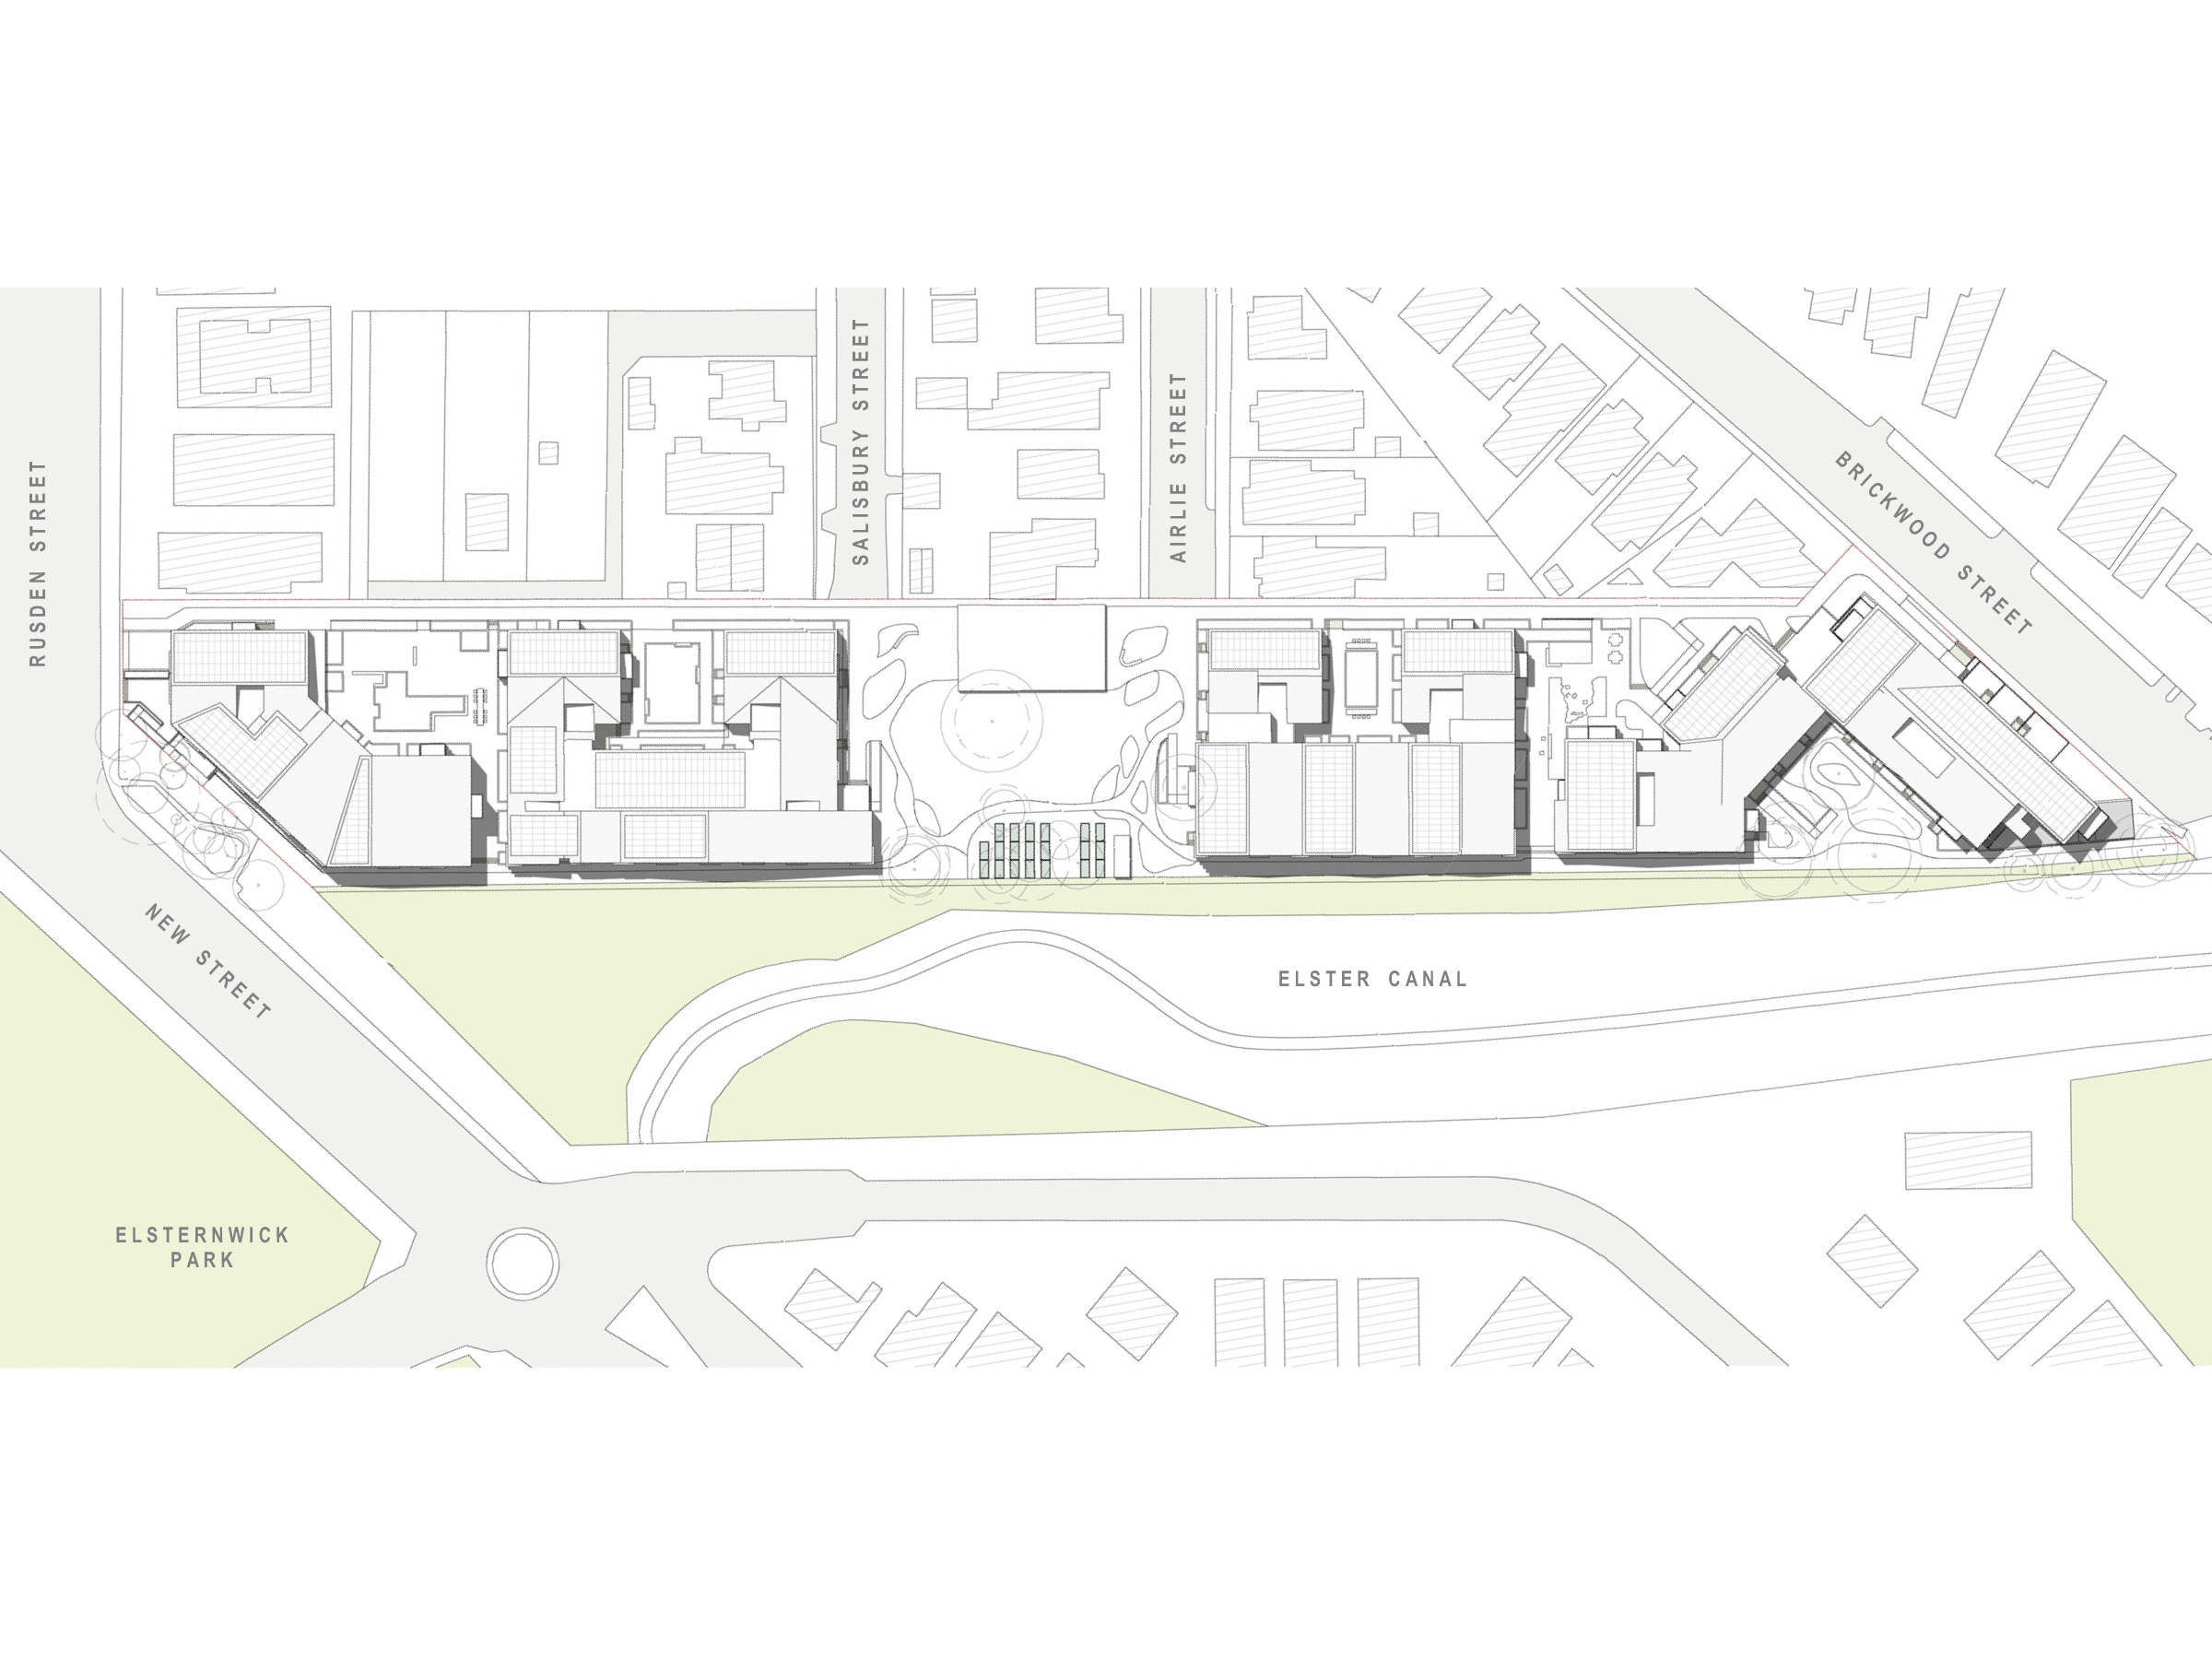 Diagram showing the shadows created by the new development in December at 12pm